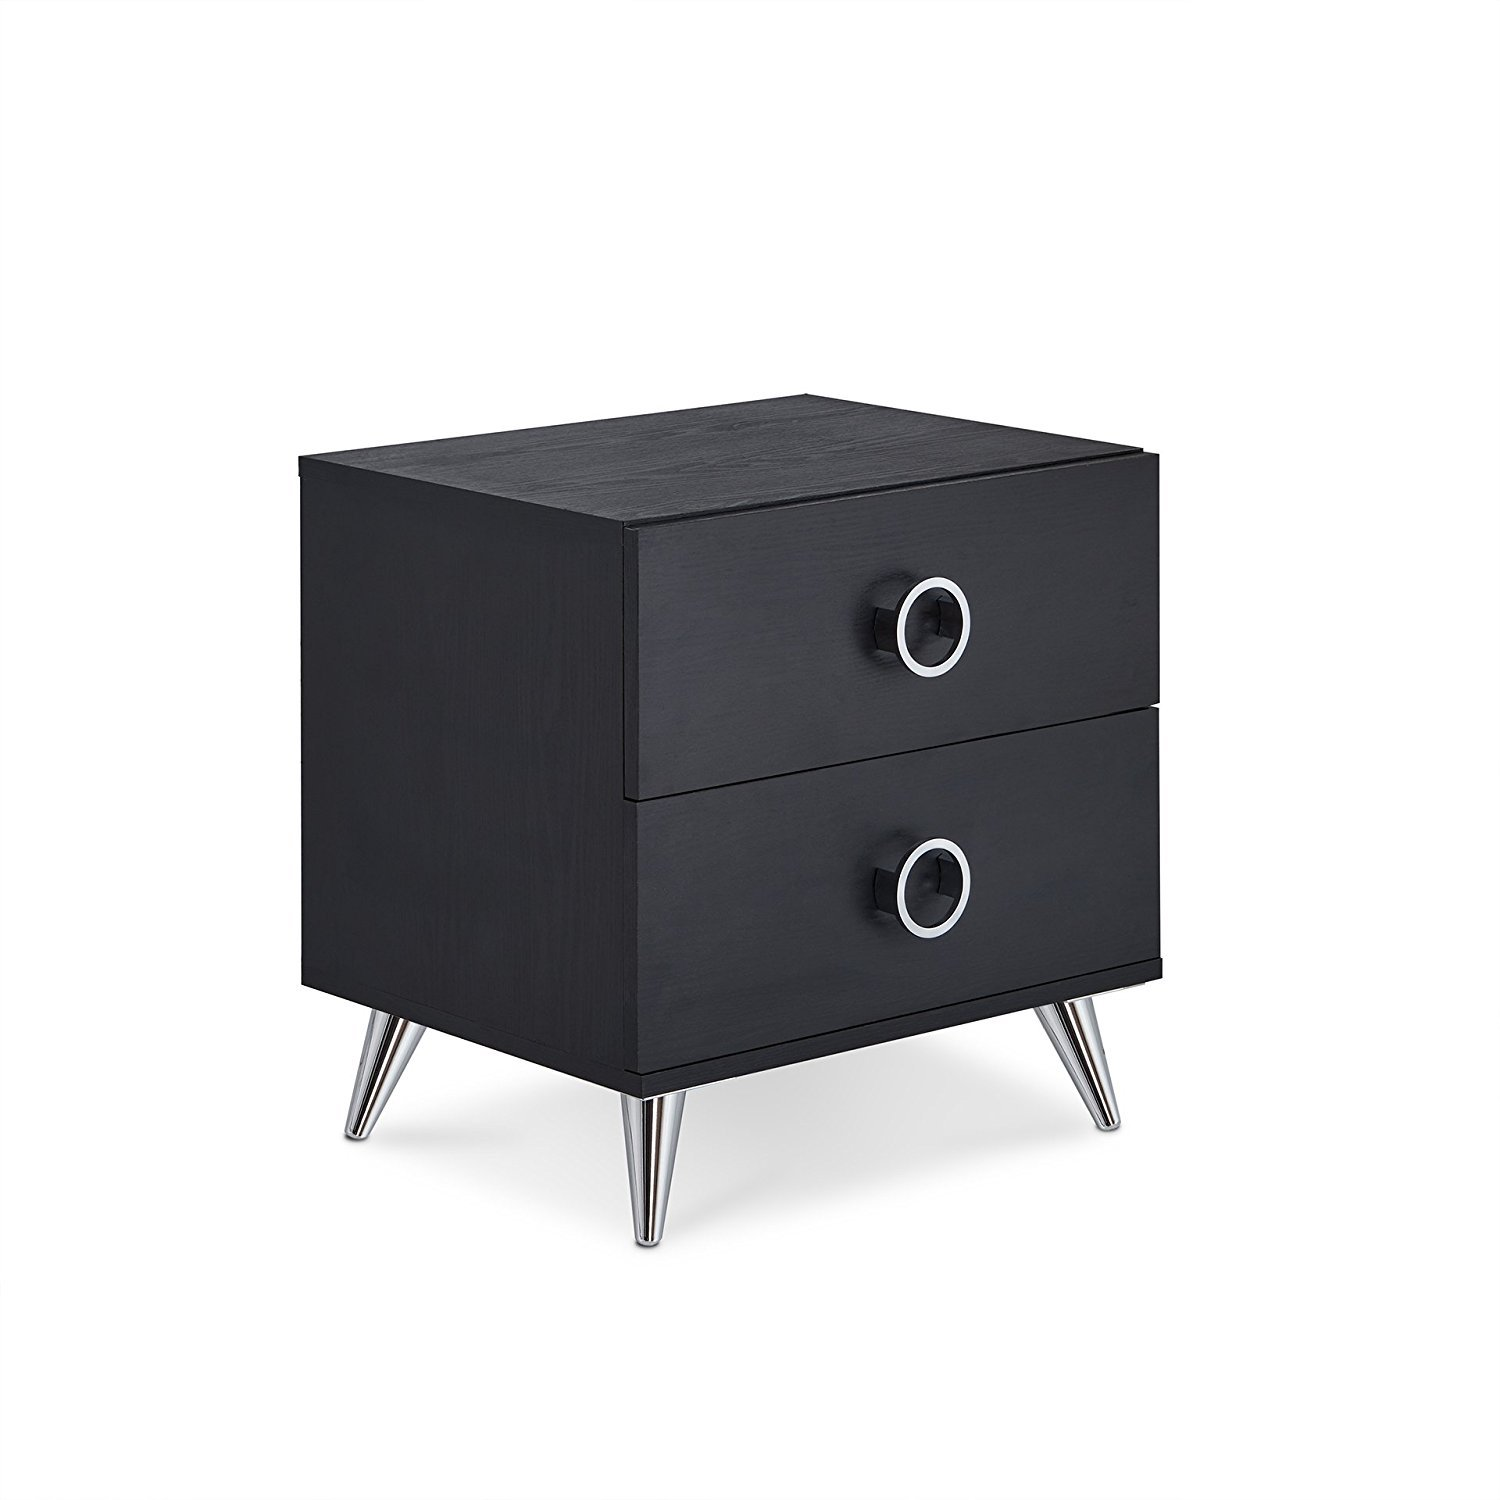 Major-Q 2 Drawer Dresser for Living Room/Bedroom/Entryway/Hallway, Black Finish with Chrome 20 x 17 x 20